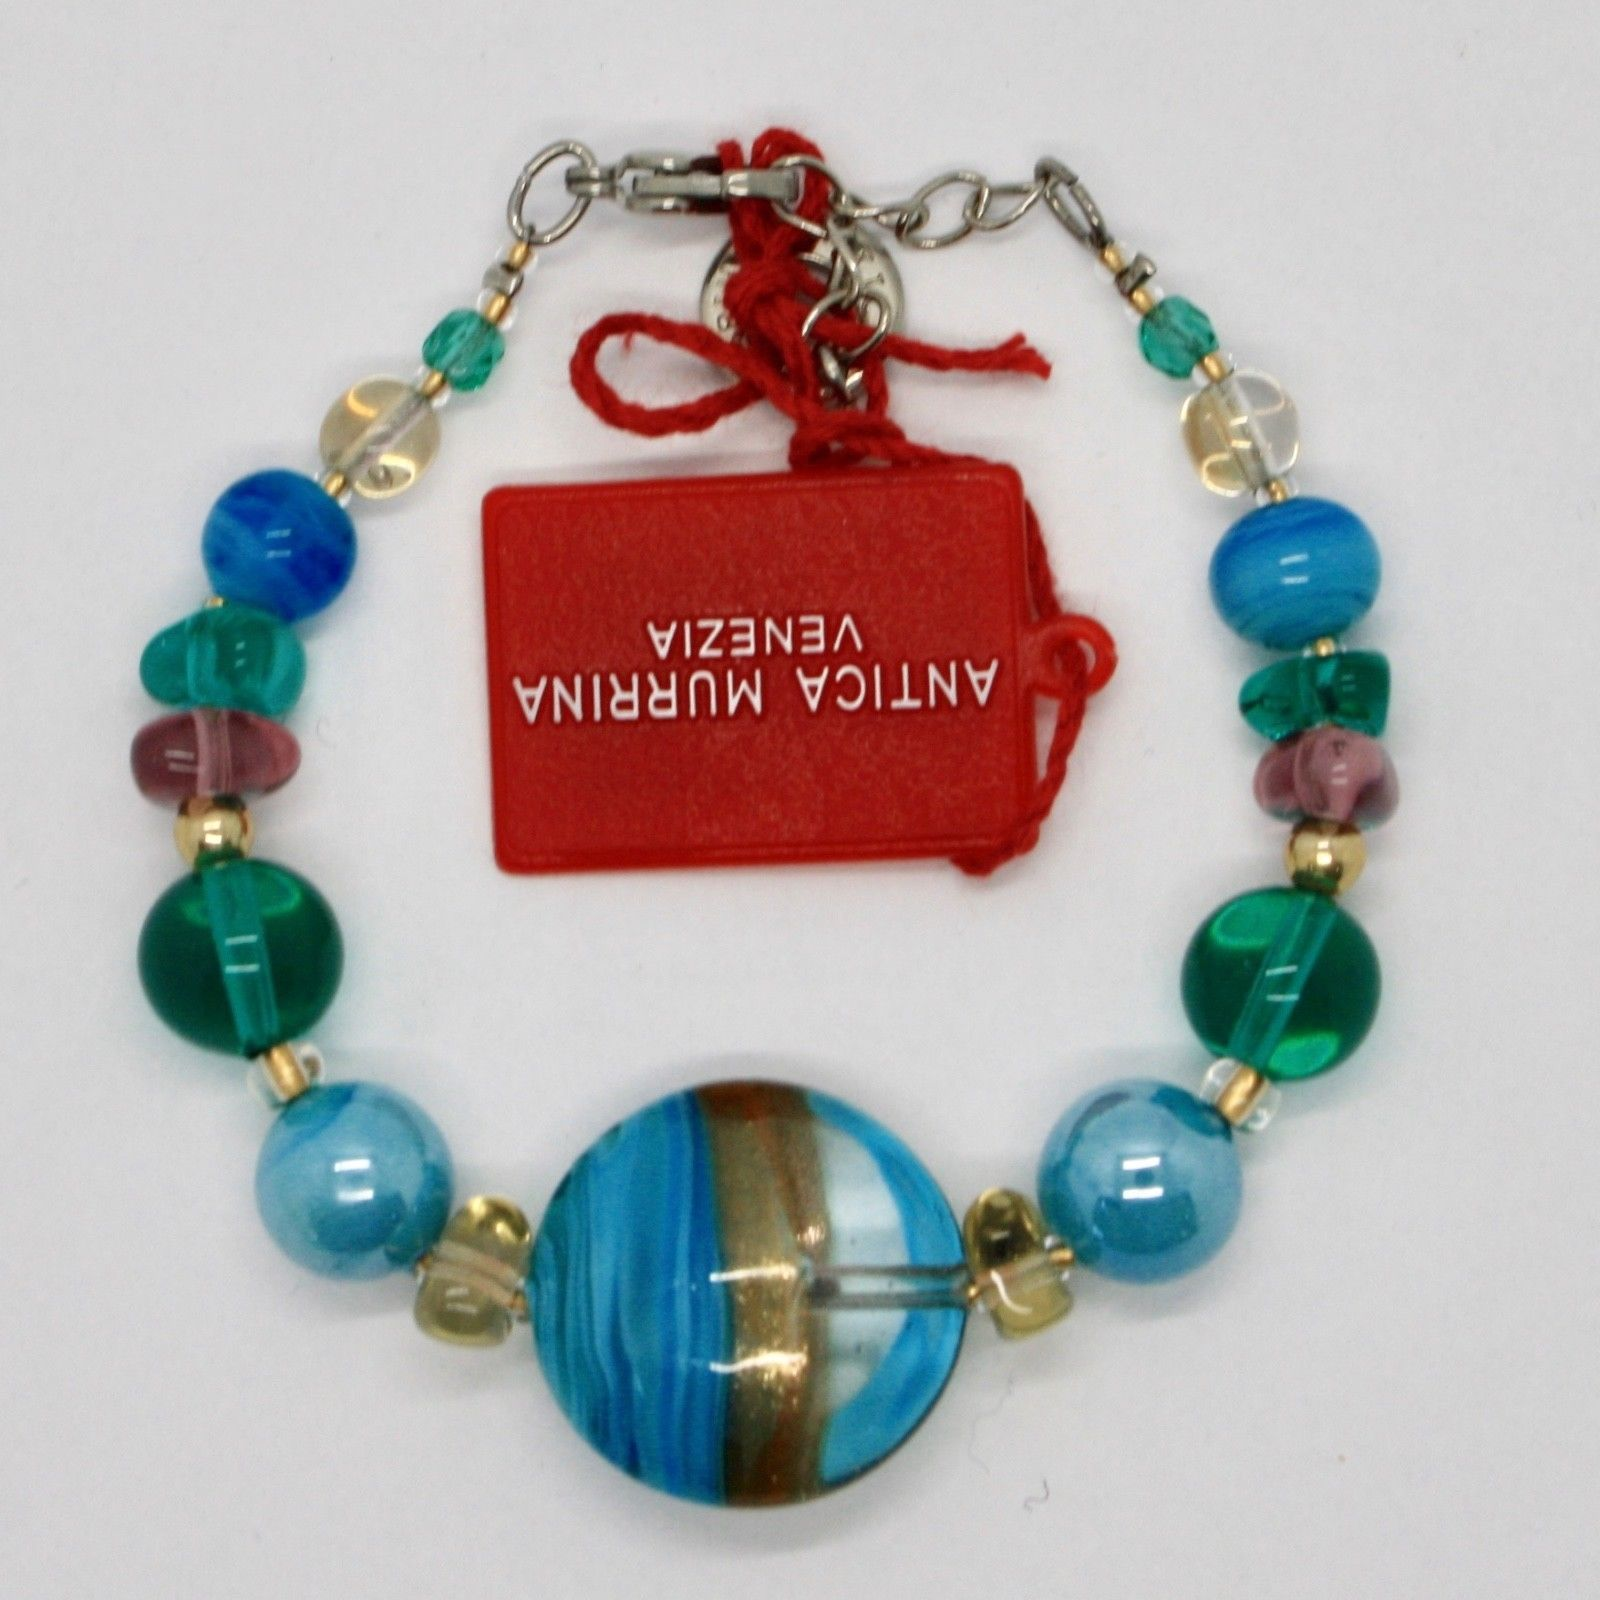 BRACELET ANTICA MURRINA VENEZIA WITH MURANO GLASS GOLD BLUE TURQUOISE BR761A07